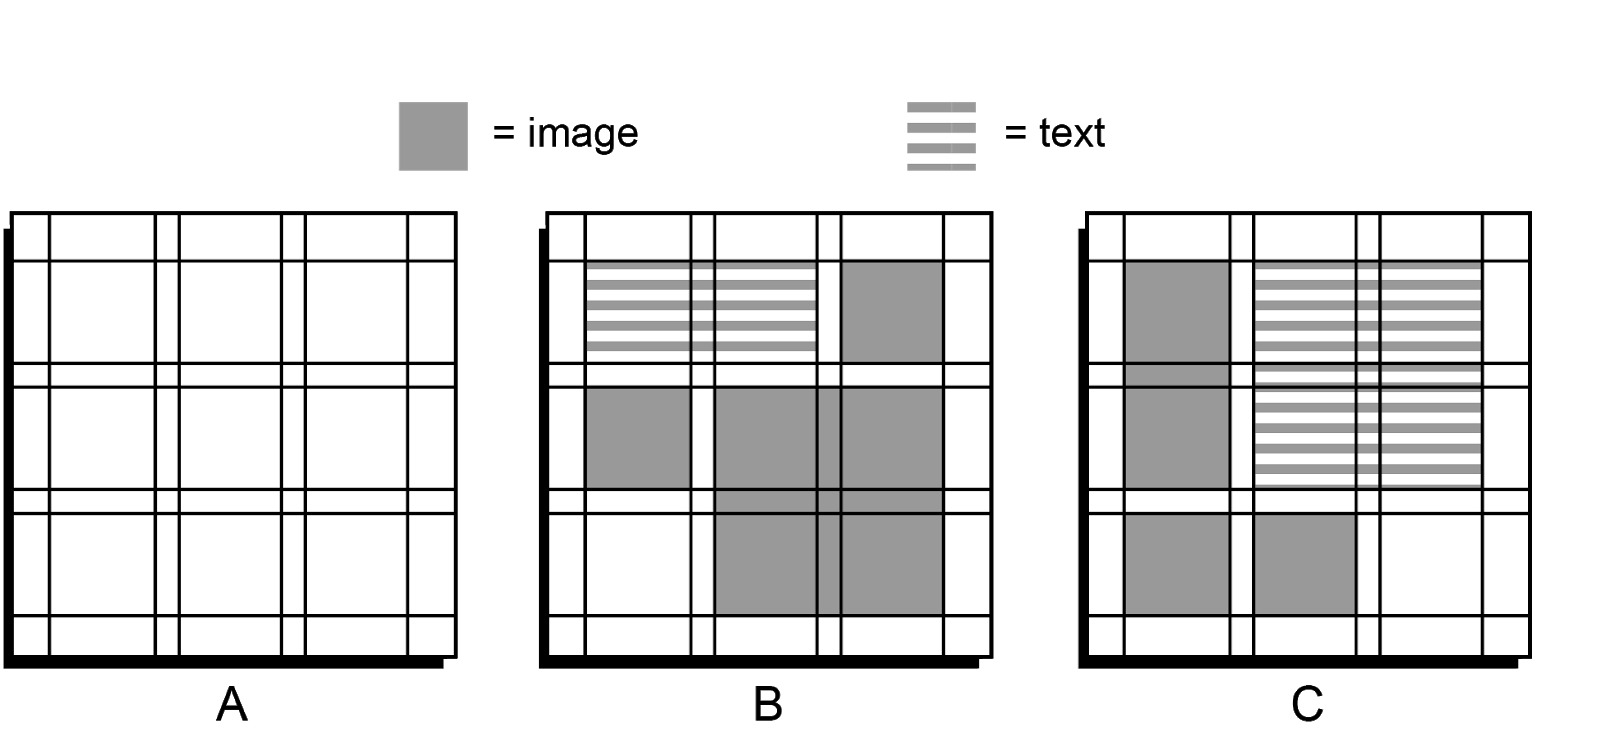 example grid system